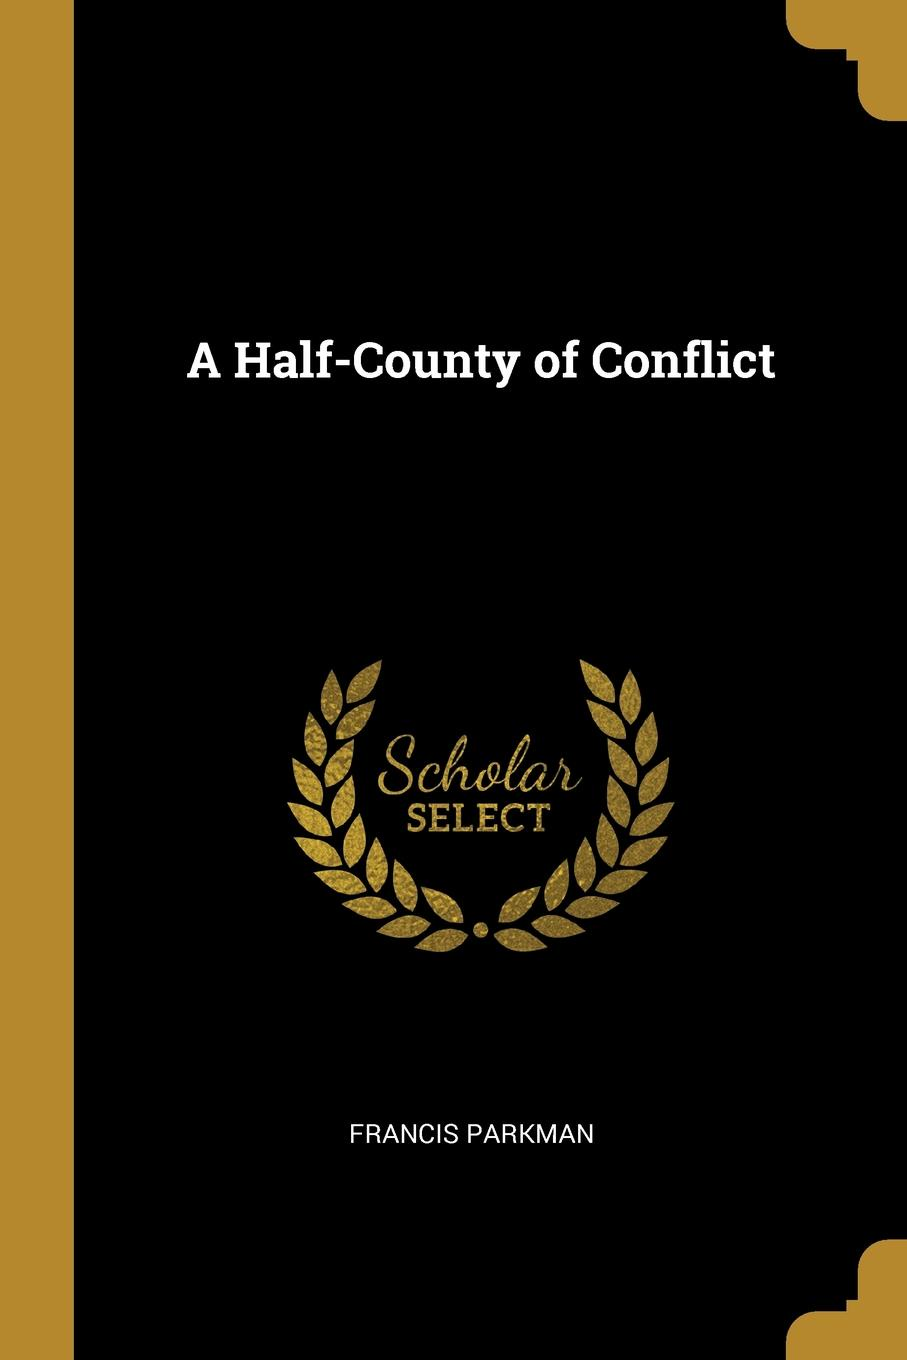 Francis Parkman A Half-County of Conflict